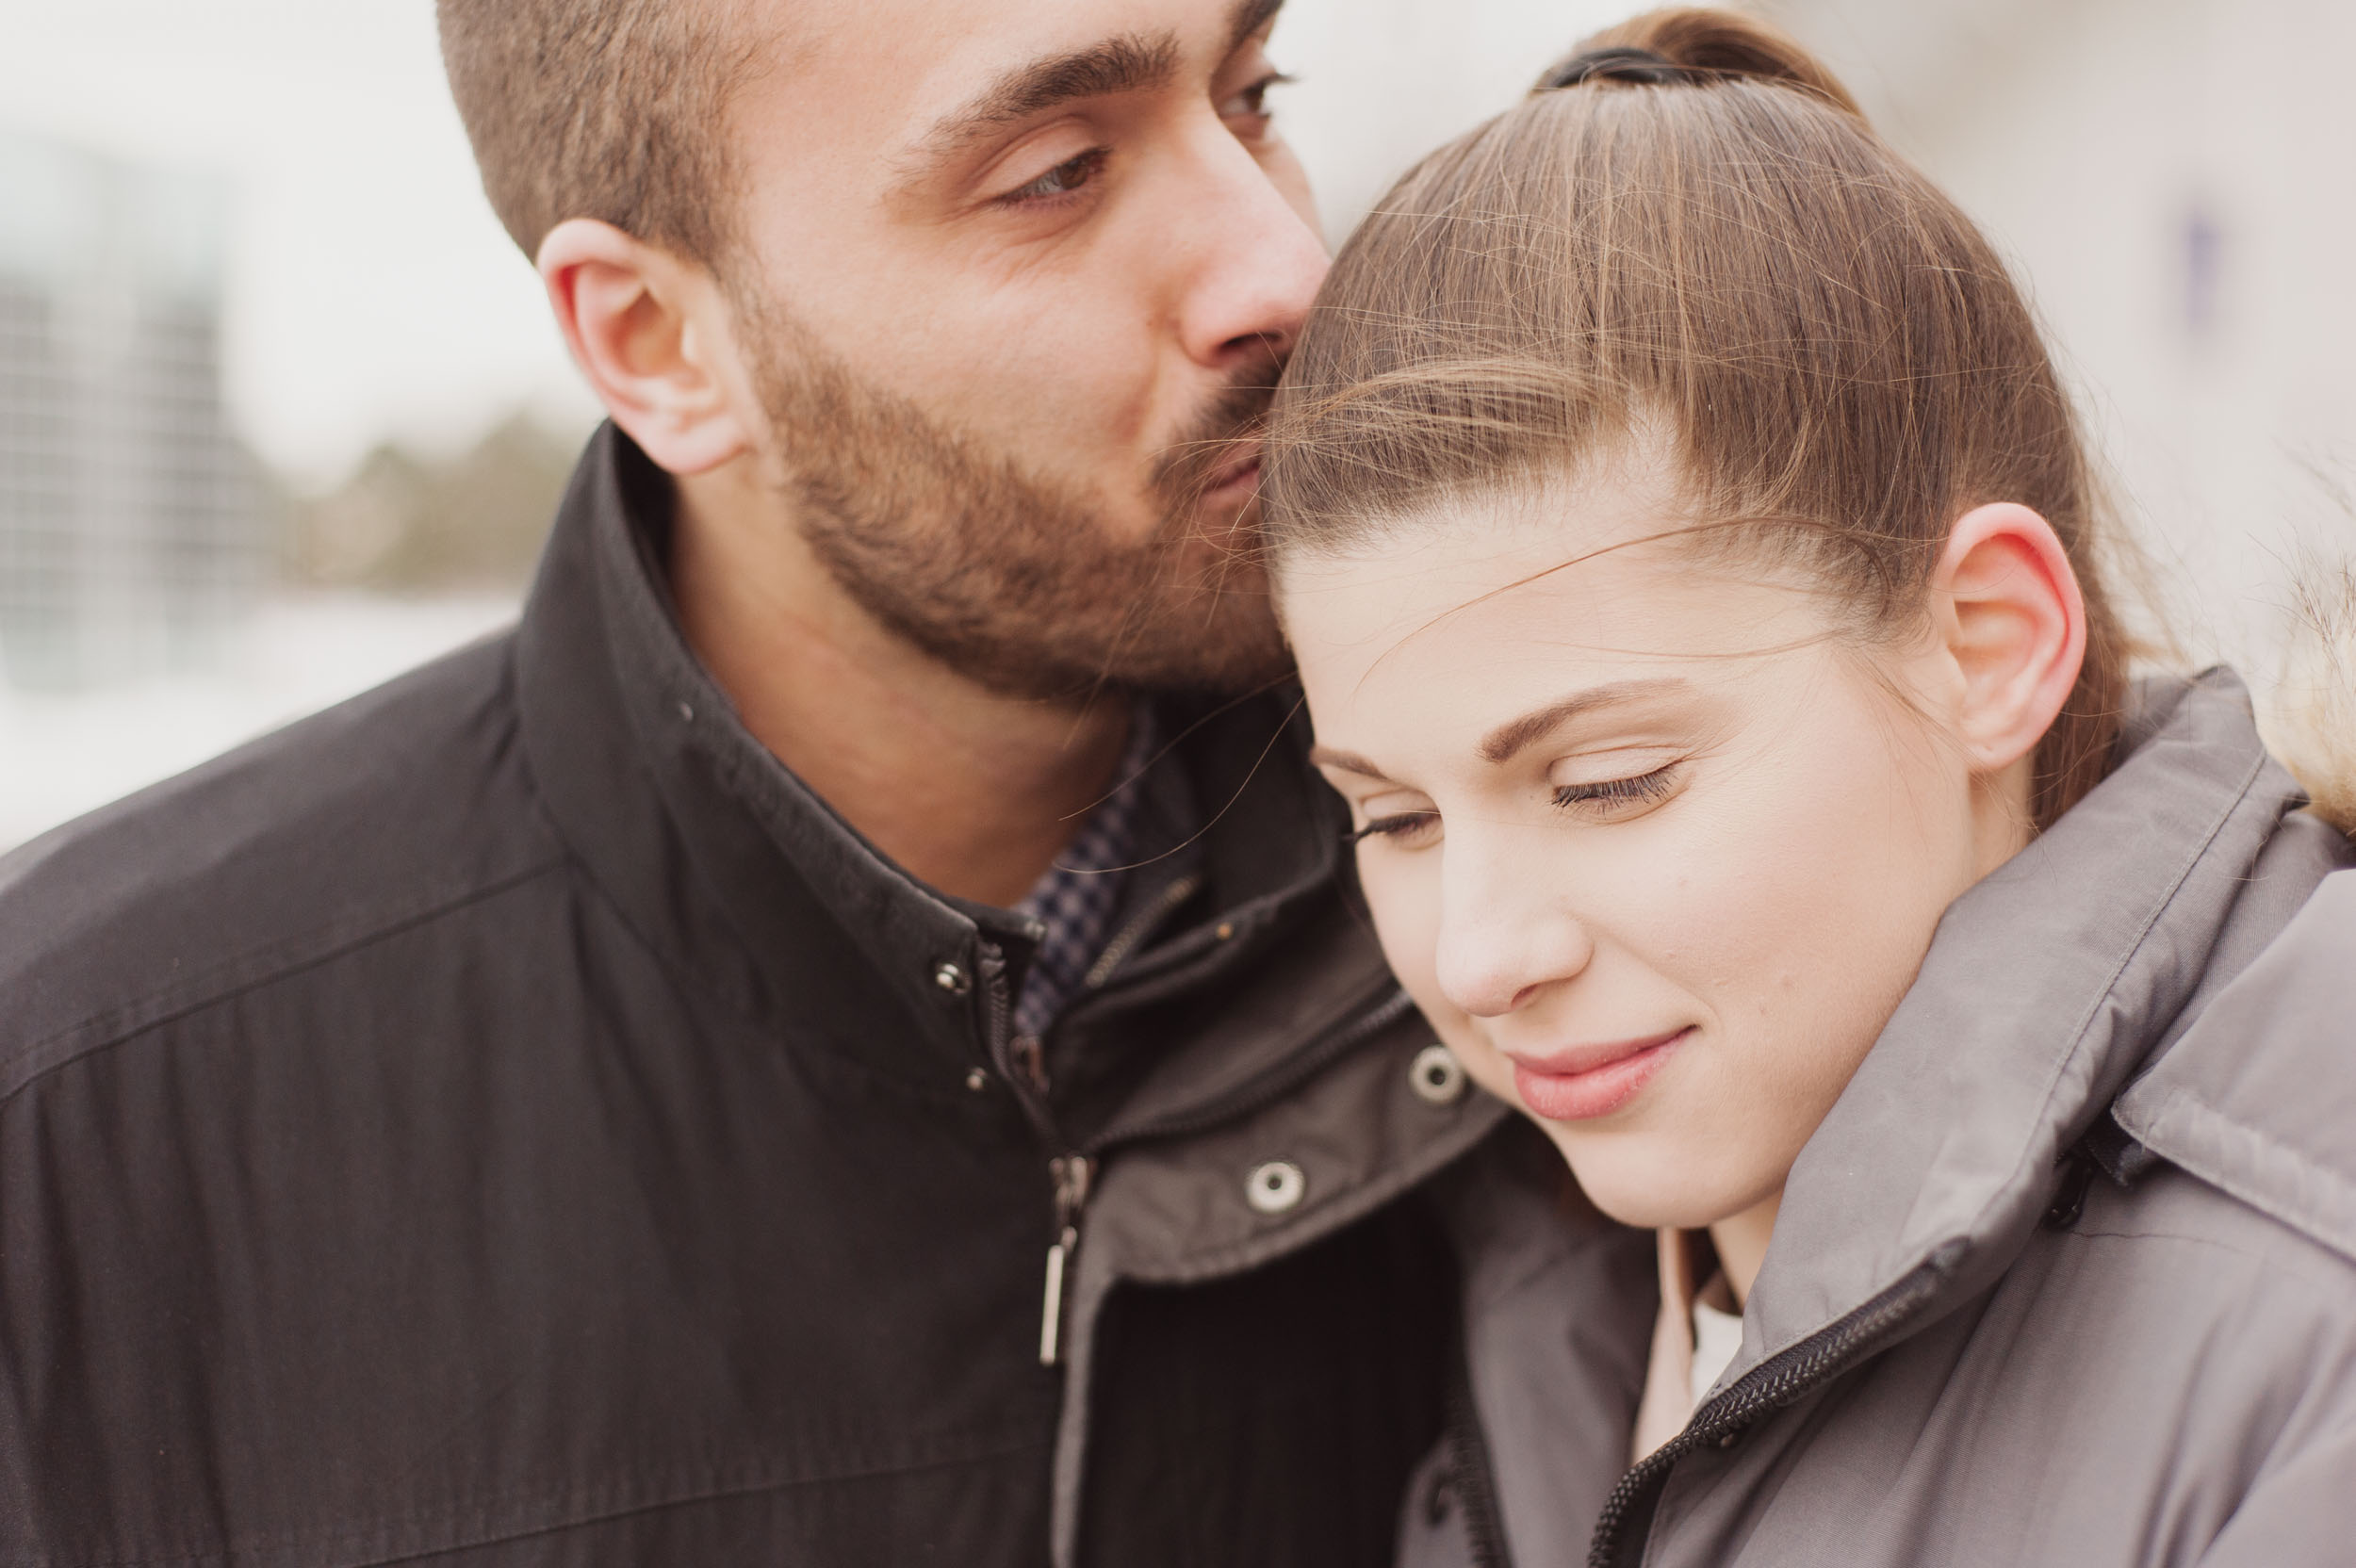 A close up image of a young Caucasian man kissing a young Caucasian woman on her head and she looks on content.